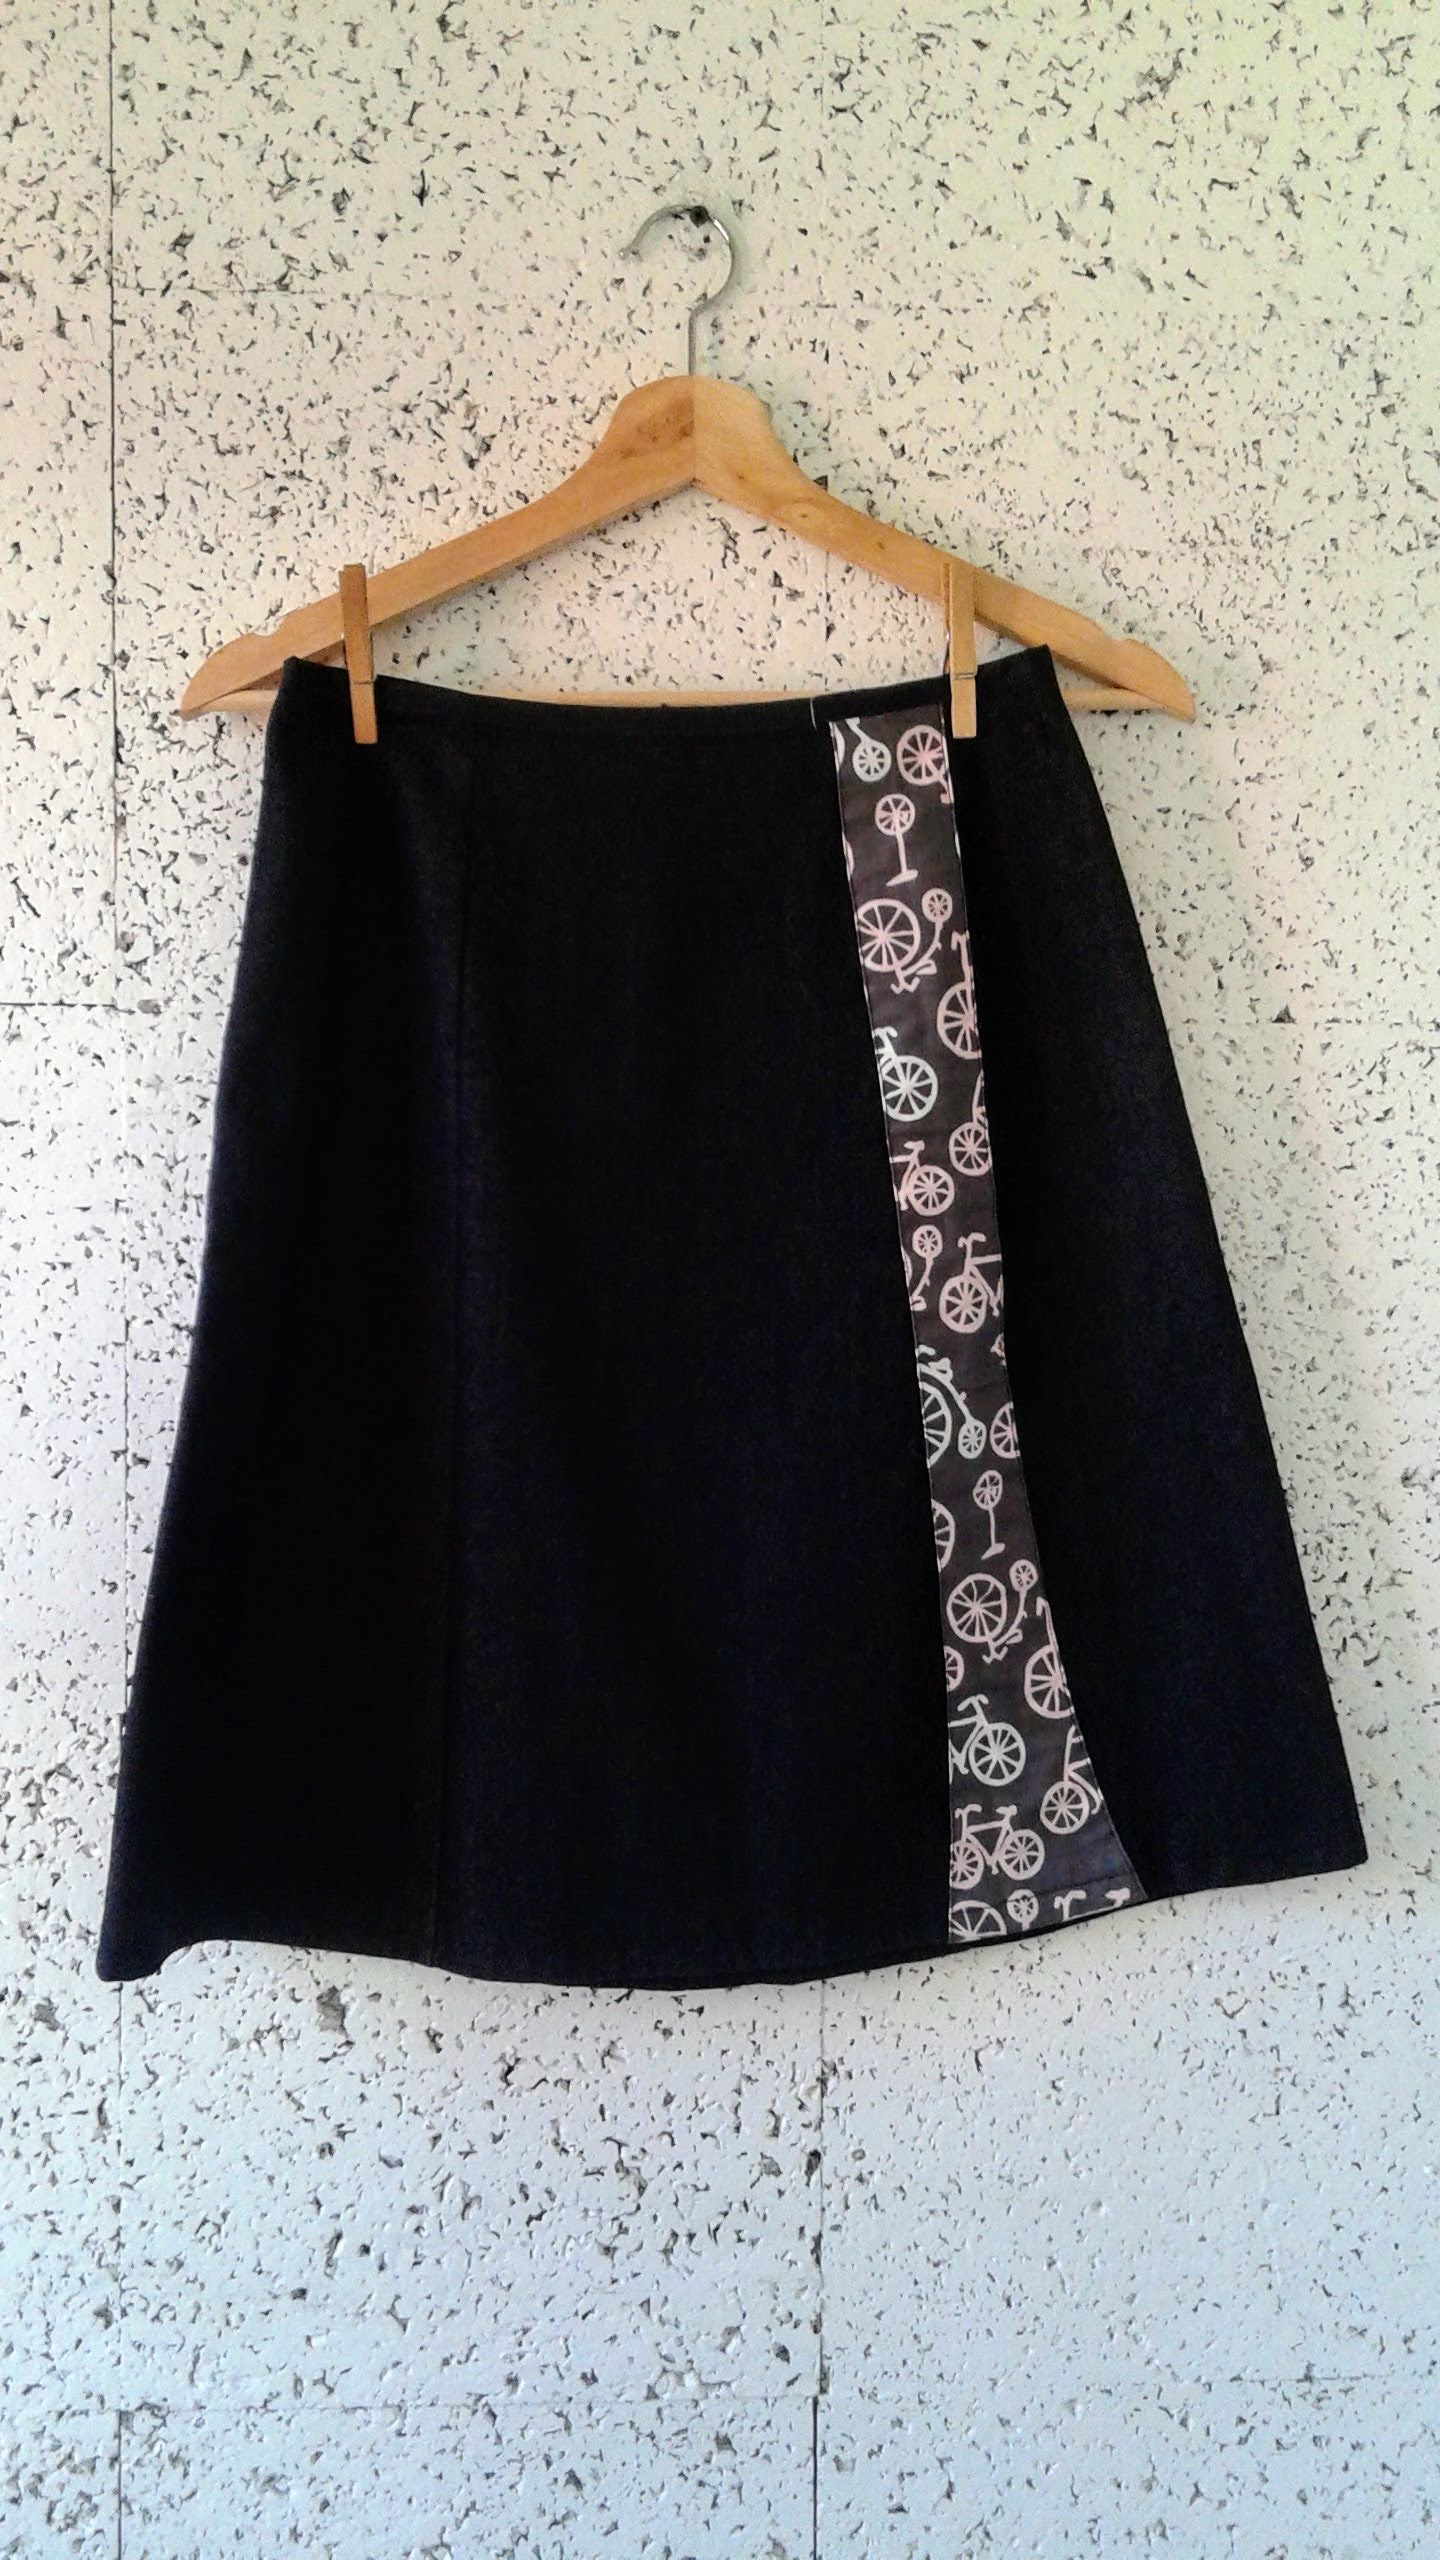 Desserts and Skirts skirt; Size XS, $26